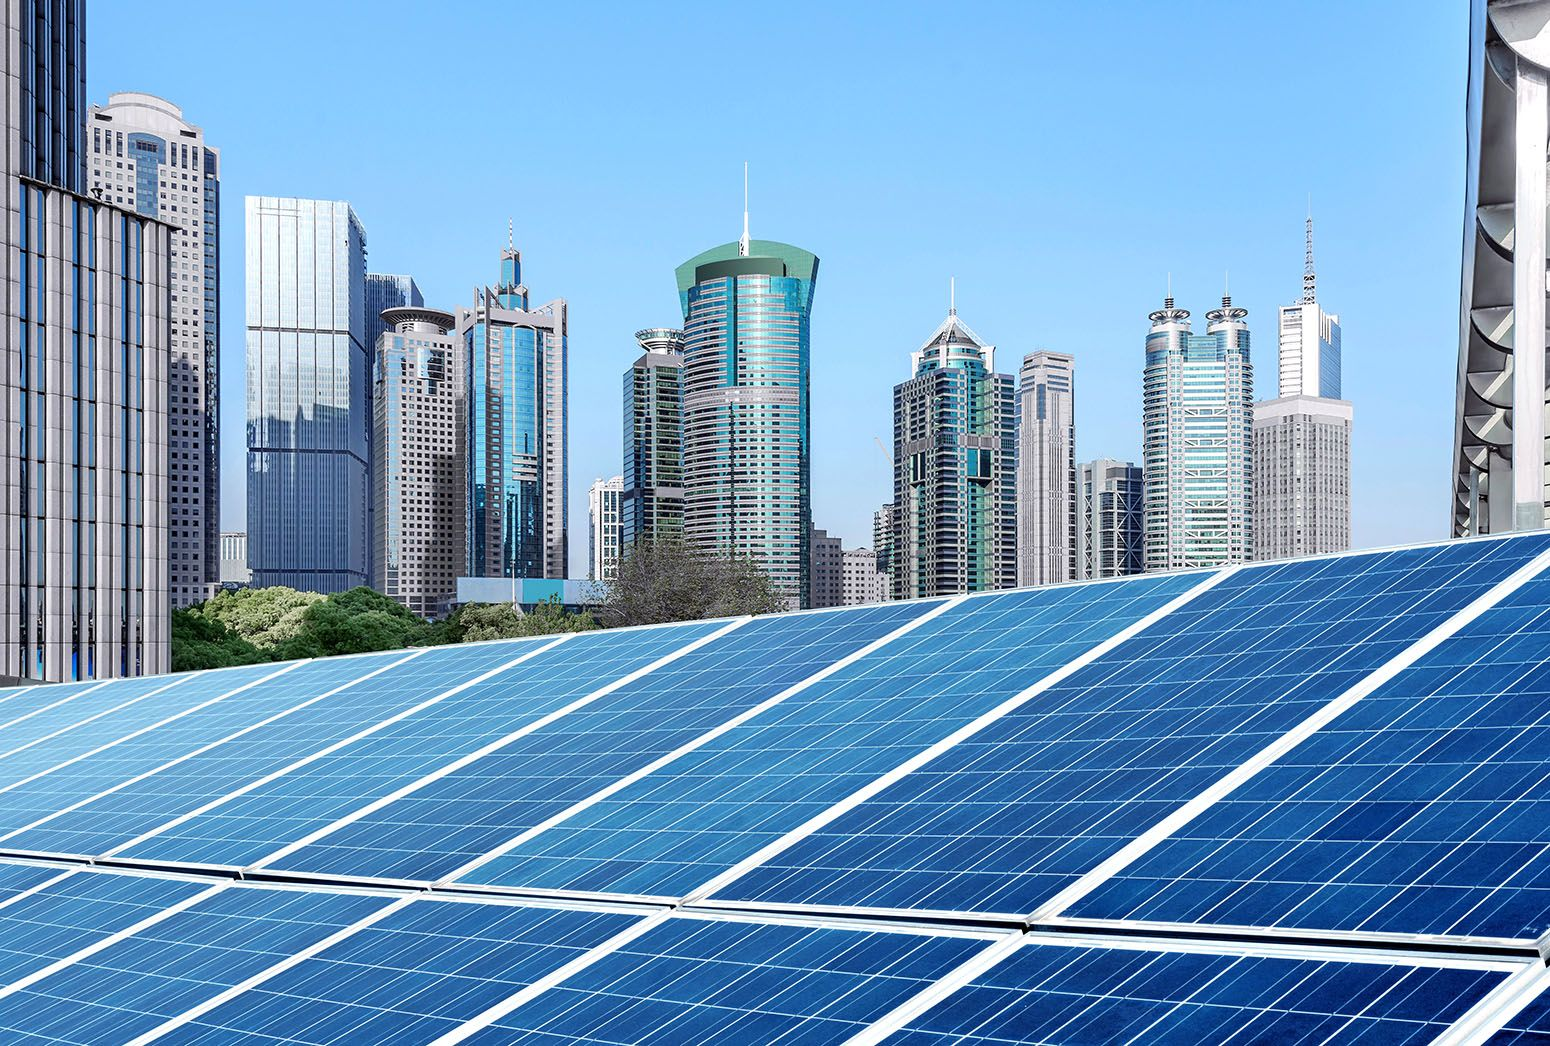 Solar Now Cheaper Than Grid Electricity In Every Chinese City Study Findshttps Https Ift Tt 2kjqnd8 Solar Solar Thermal Energy Solar Panels